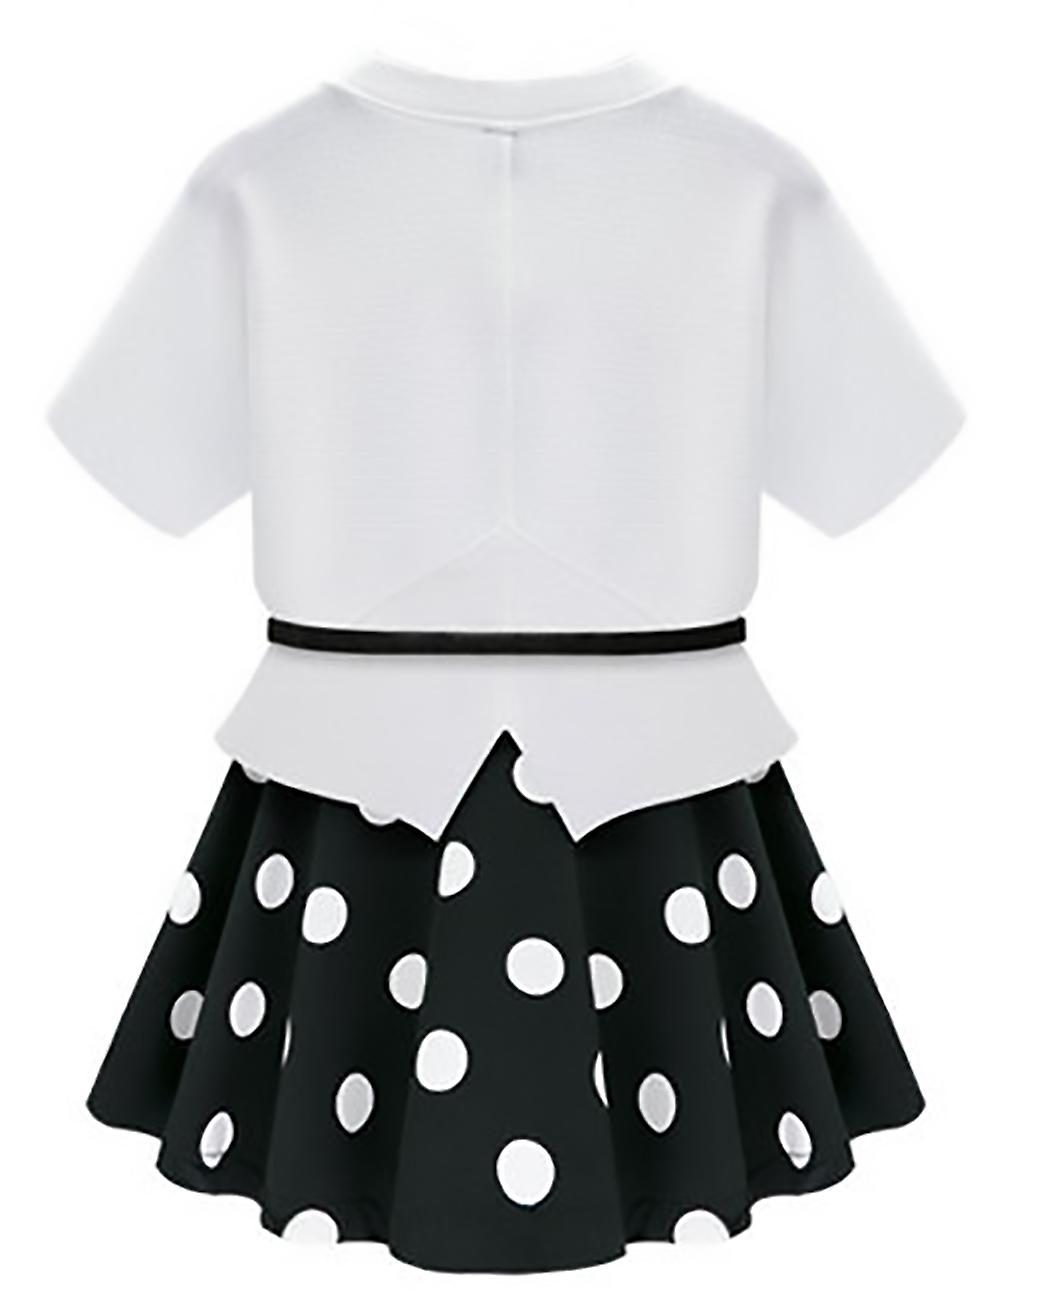 Together dress with polka dots and top short sleeves Petyr